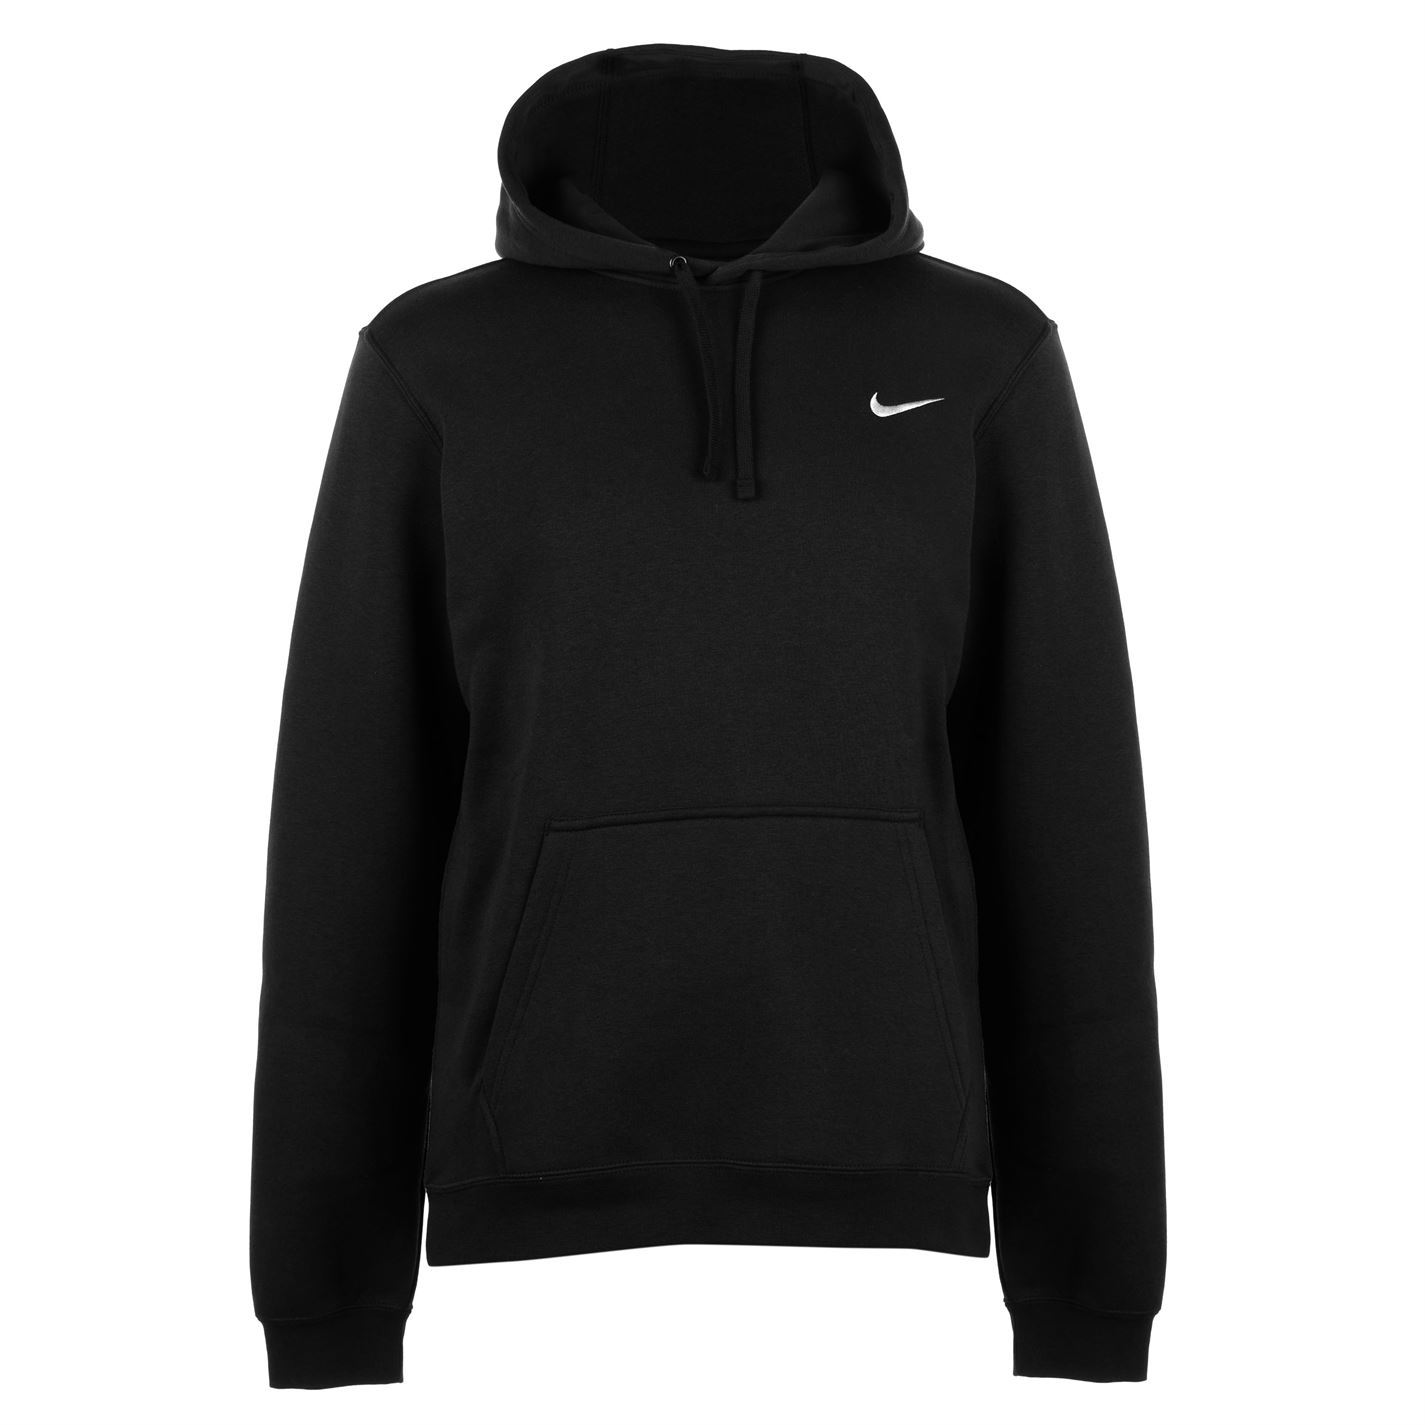 Nike-Fundamentals-Fleece-Lined-Pullover-Hoody-Mens-OTH-Hoodie-Sweatshirt-Sweater thumbnail 6